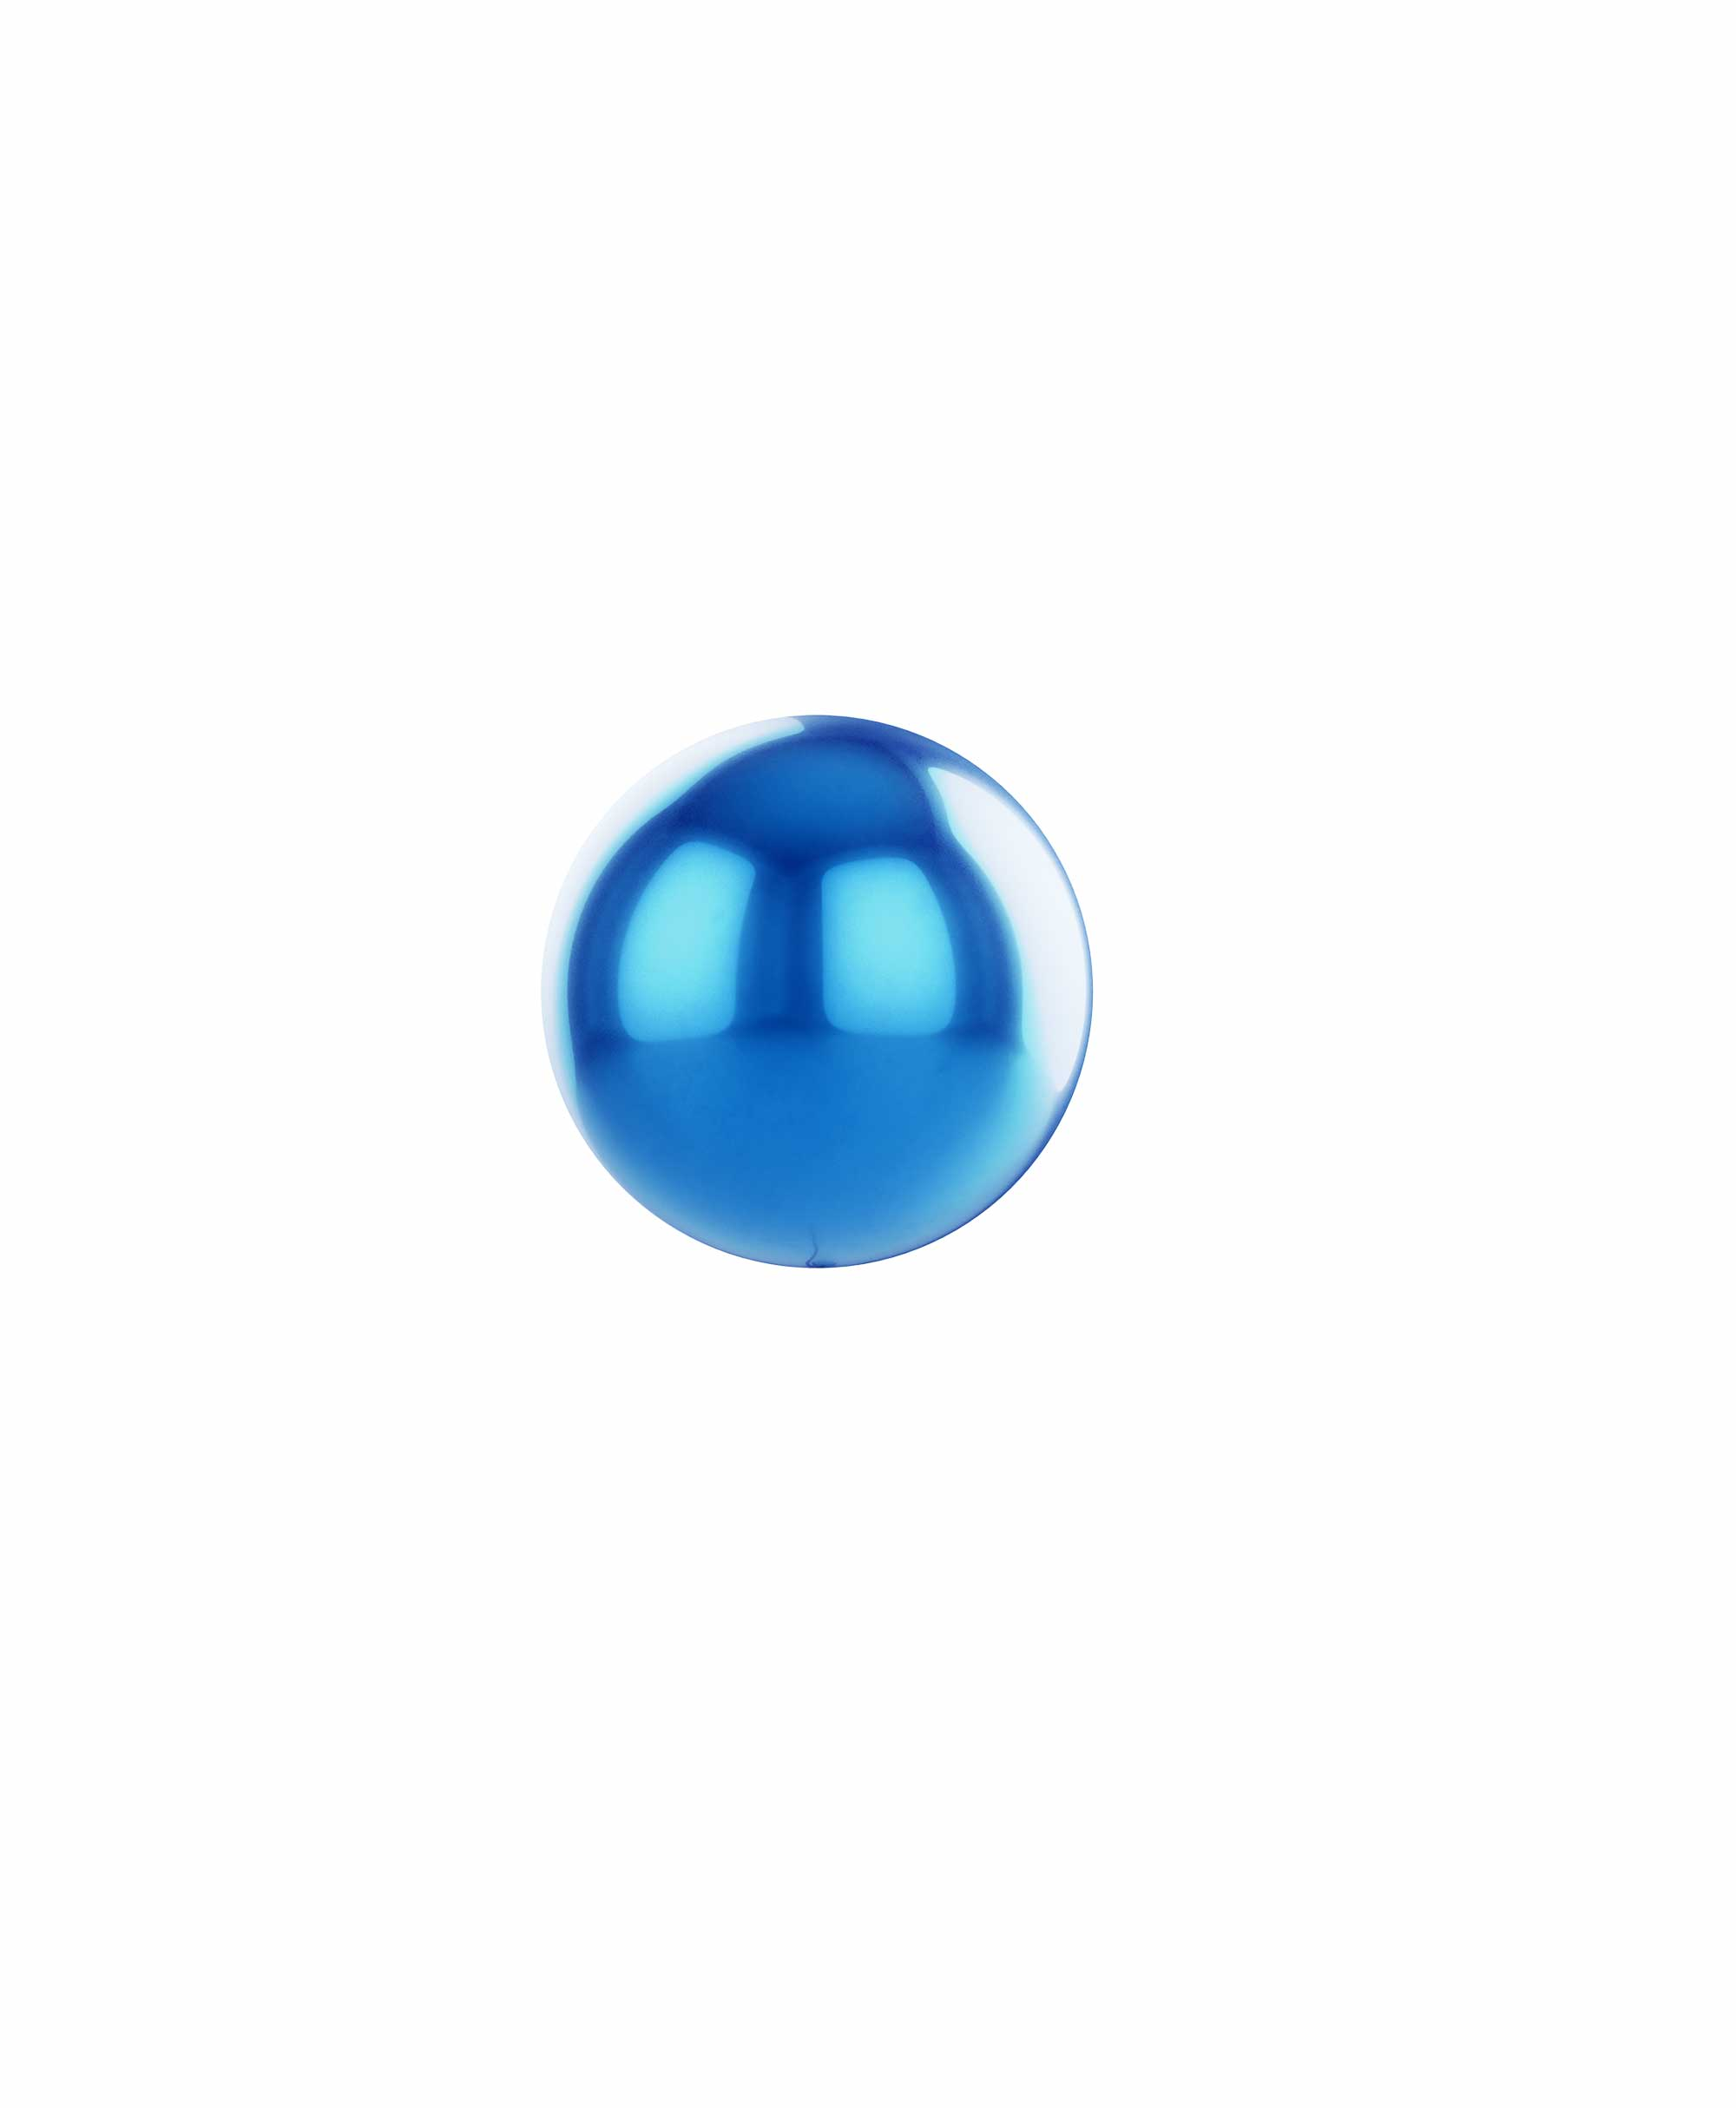 "Royal blue balloon ball 10"" - Sky Theme"